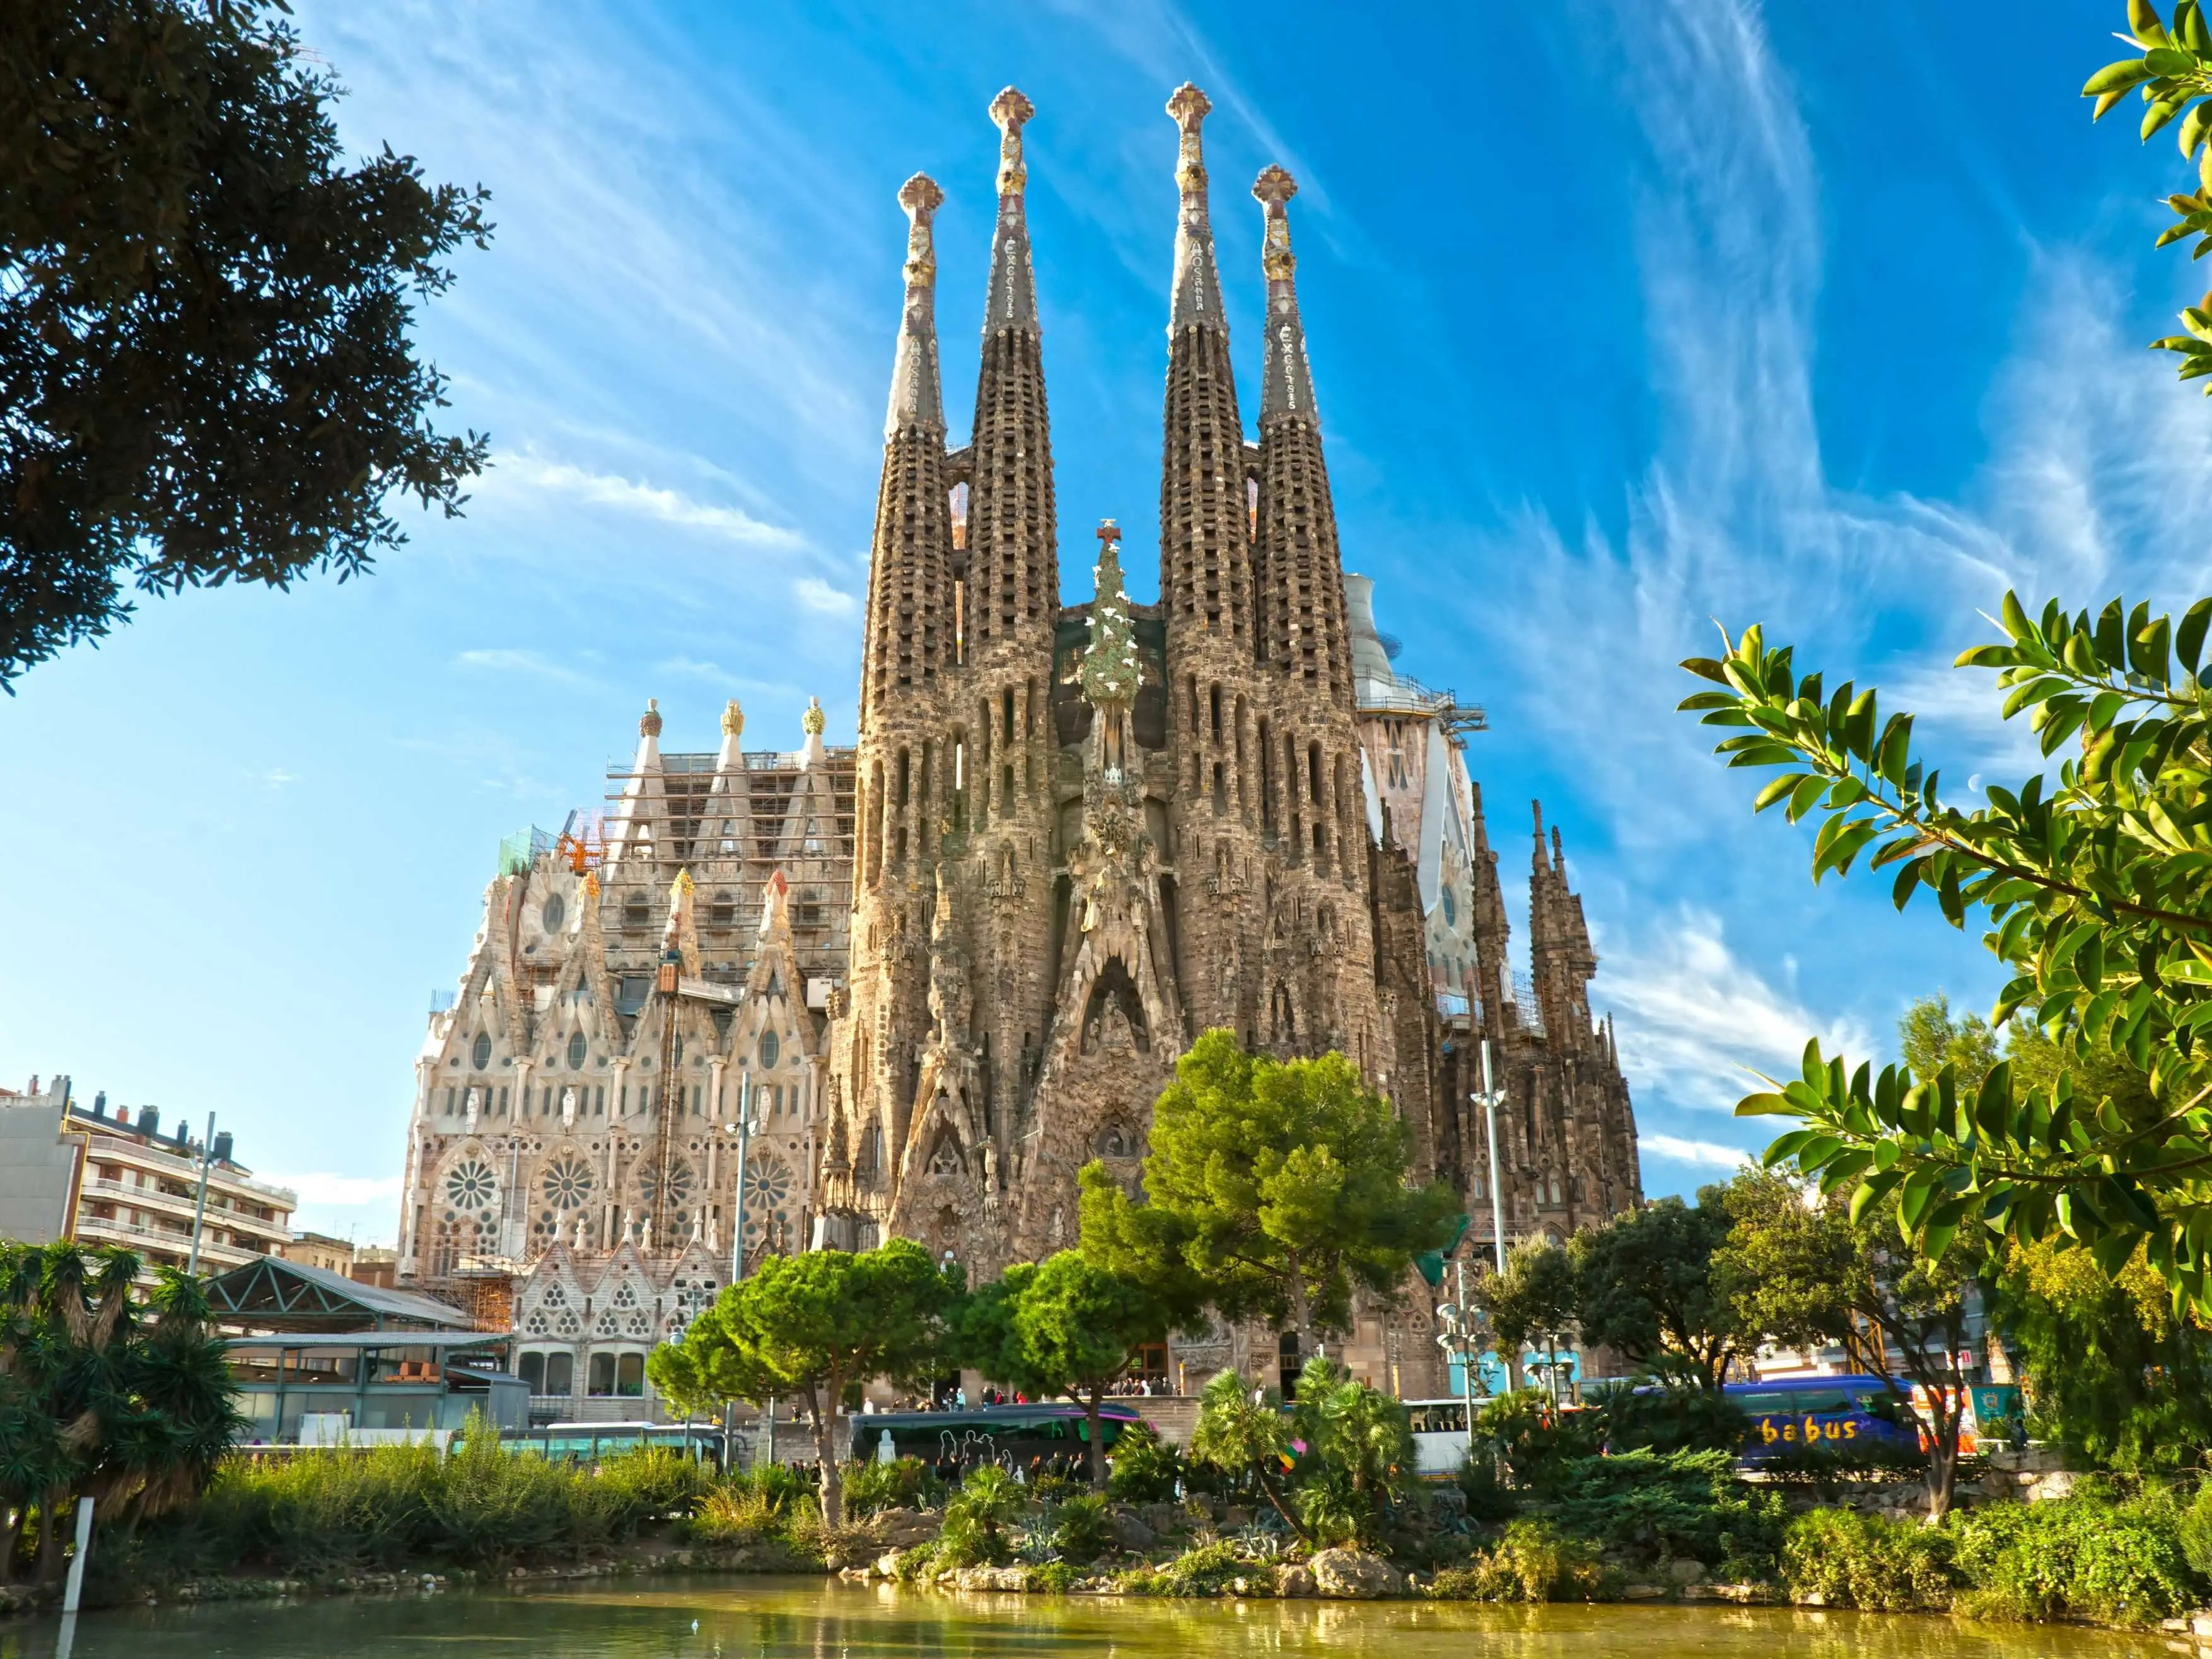 And sometimes our eyes can't comprehend what they see. Here's the Basilica Sagrada Familia in Barcelona, Spain, designed by modernist architect Antoni Gaudí.